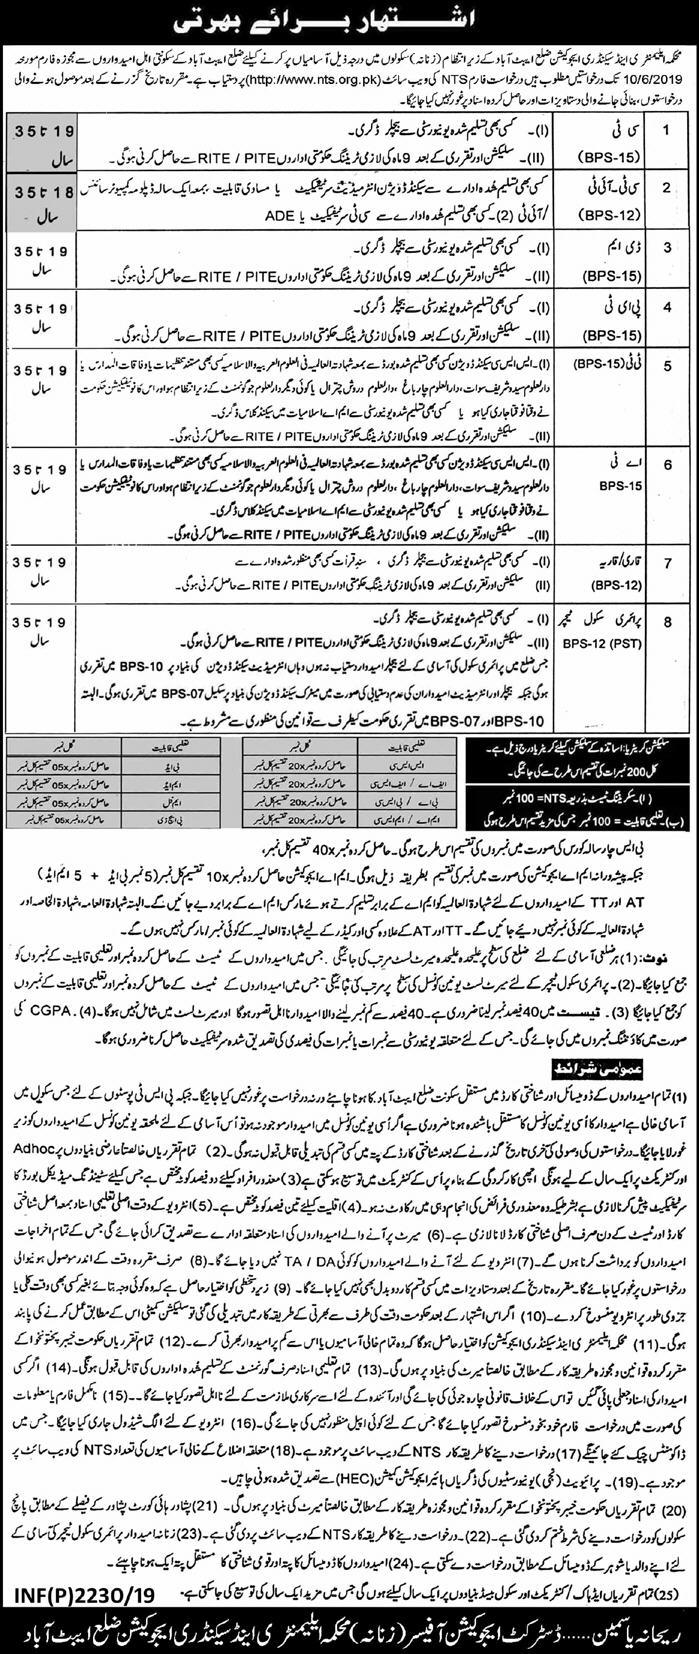 Elementary Secondary Education Department KPK Educator Jobs Via NTS